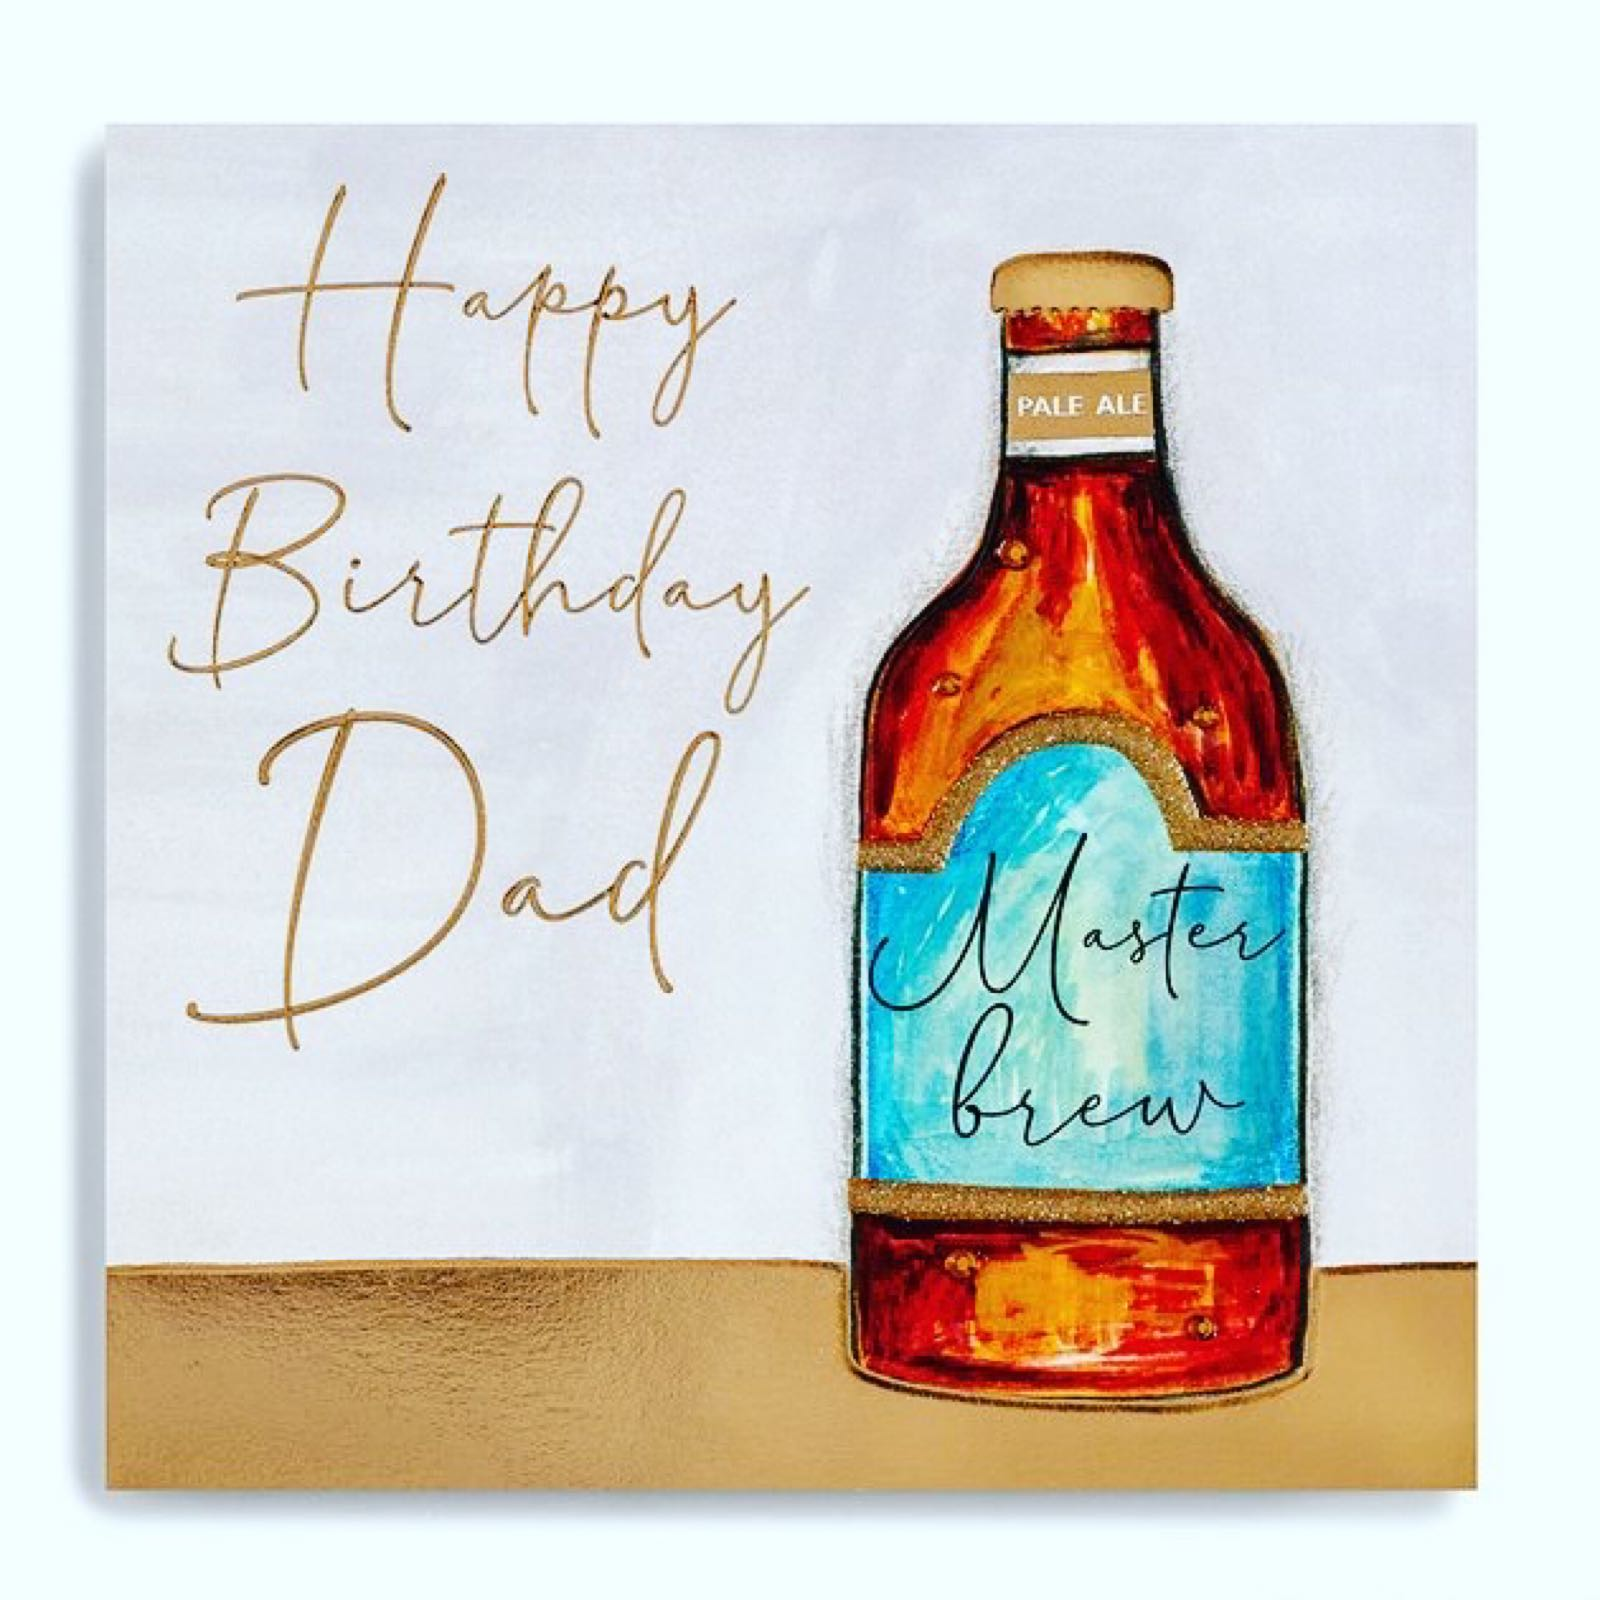 Janie Wilson happy birthday dad card